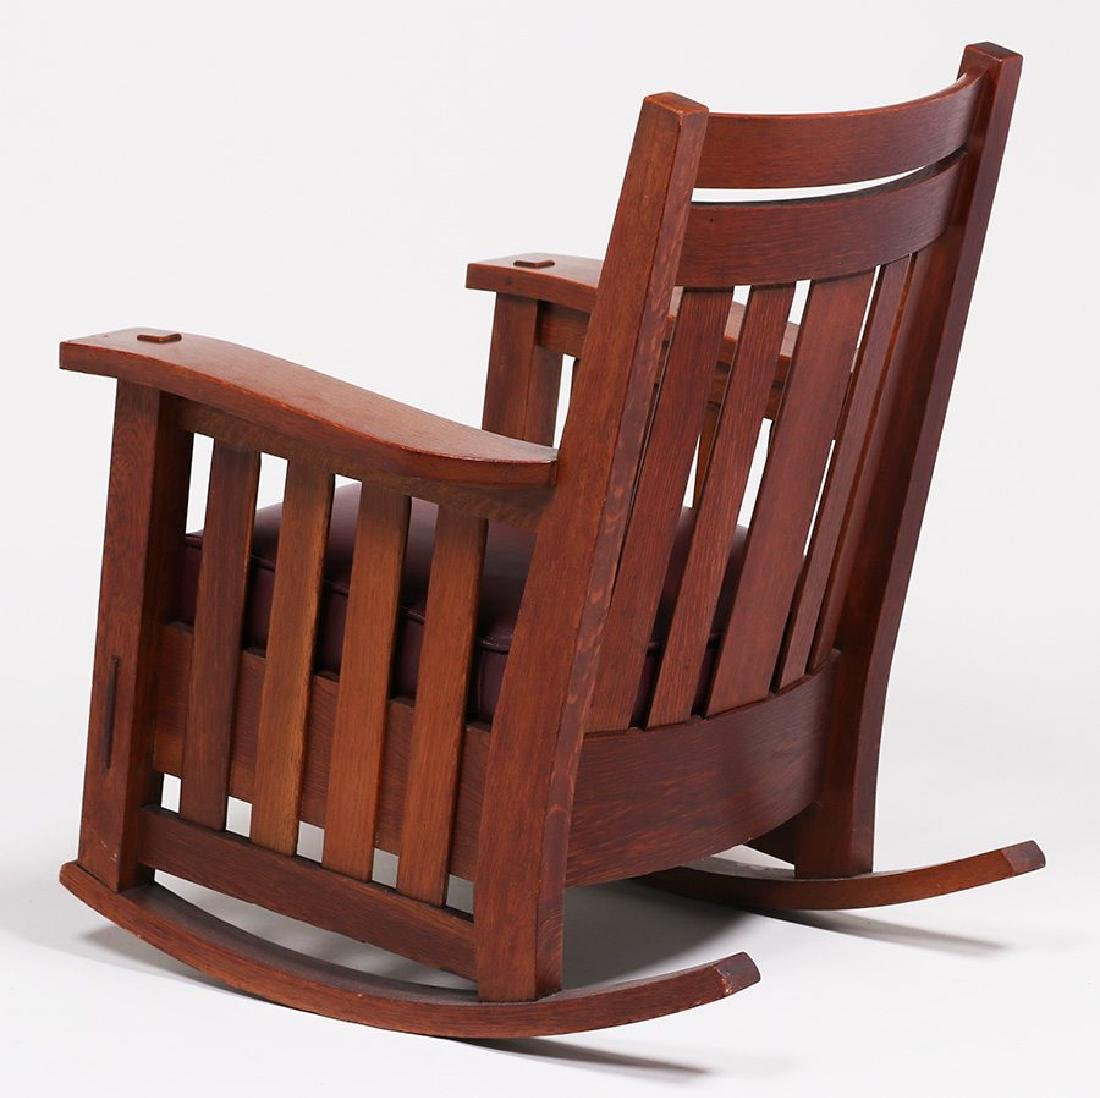 Harden Furniture Co Rocker (Match to Lot 184) - 2